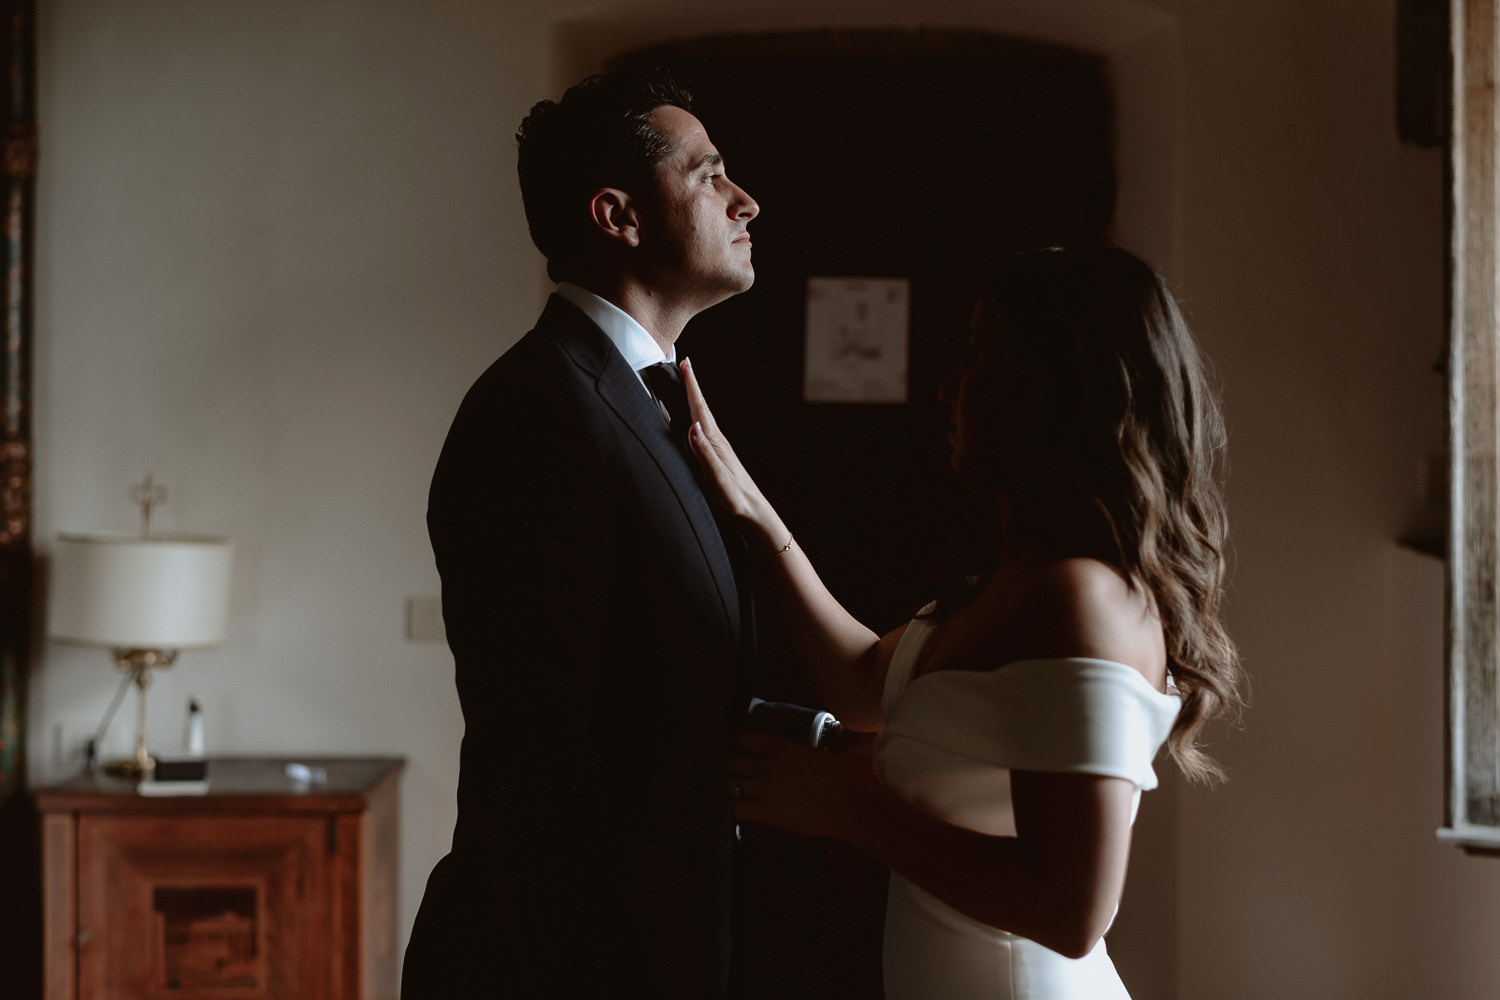 elopement photographer florence torre bellosguardo bride get ready final touches